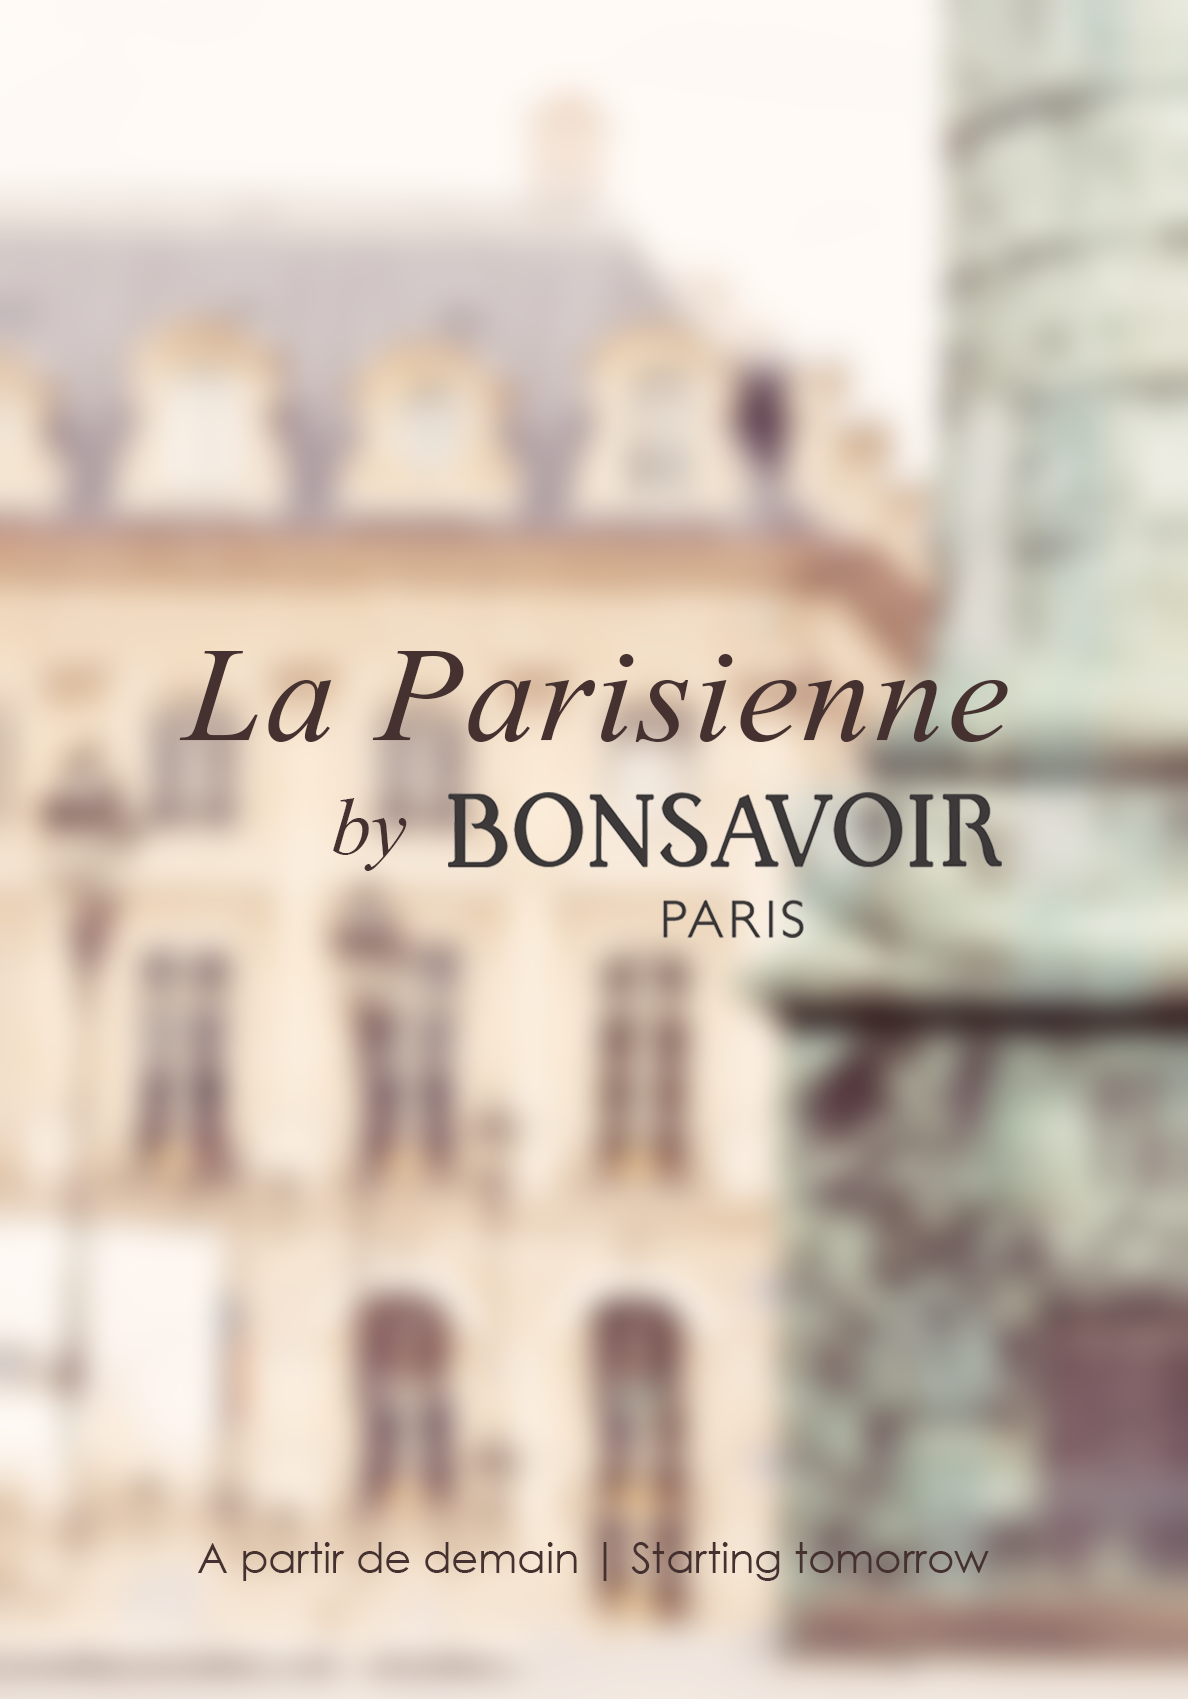 Epingle Sur La Parisienne By Bonsavoir